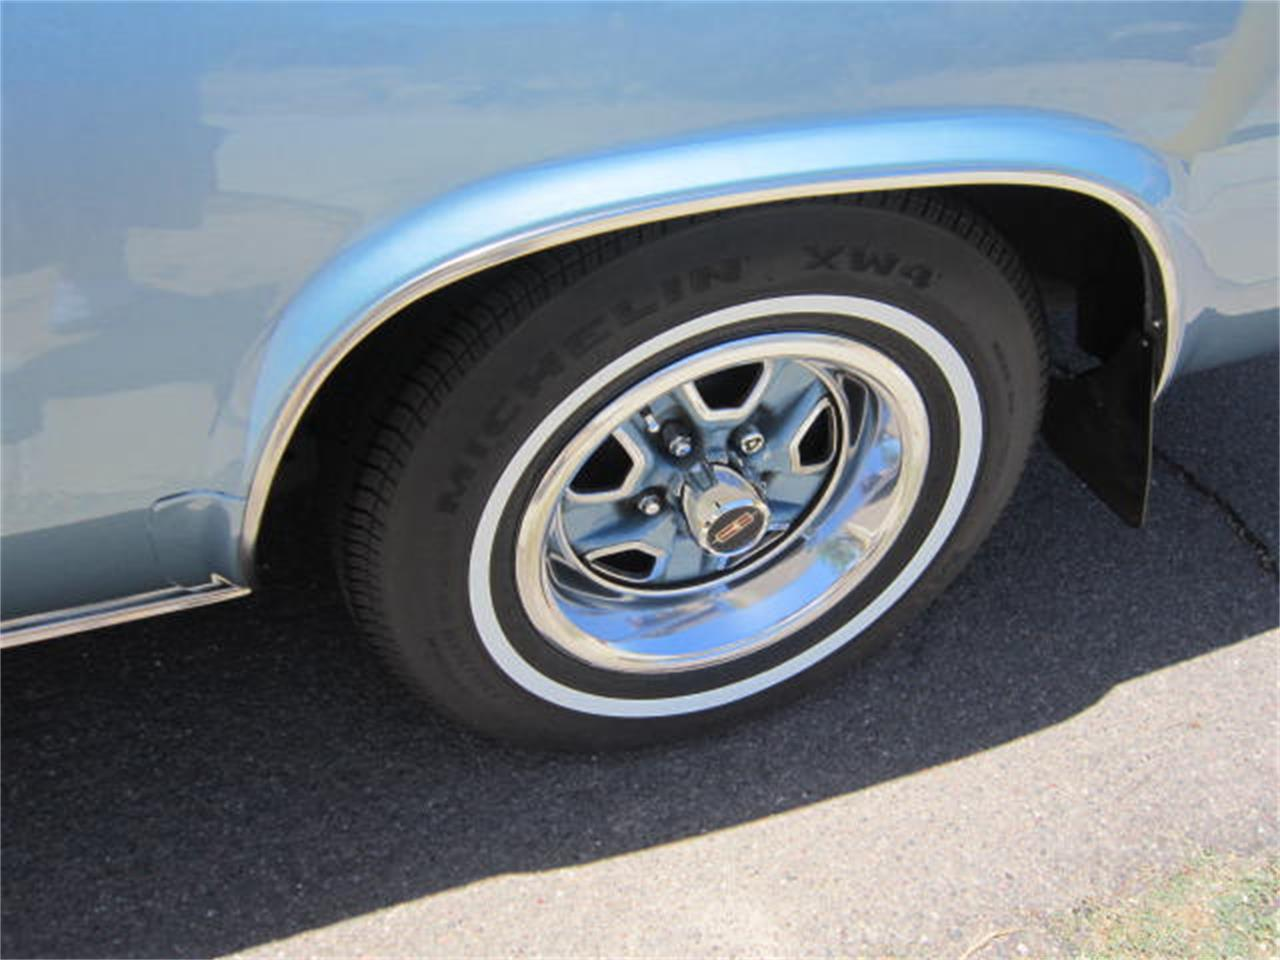 Large Picture of 1977 Cutlass located in Glendale Arizona - $15,000.00 Offered by a Private Seller - DISY